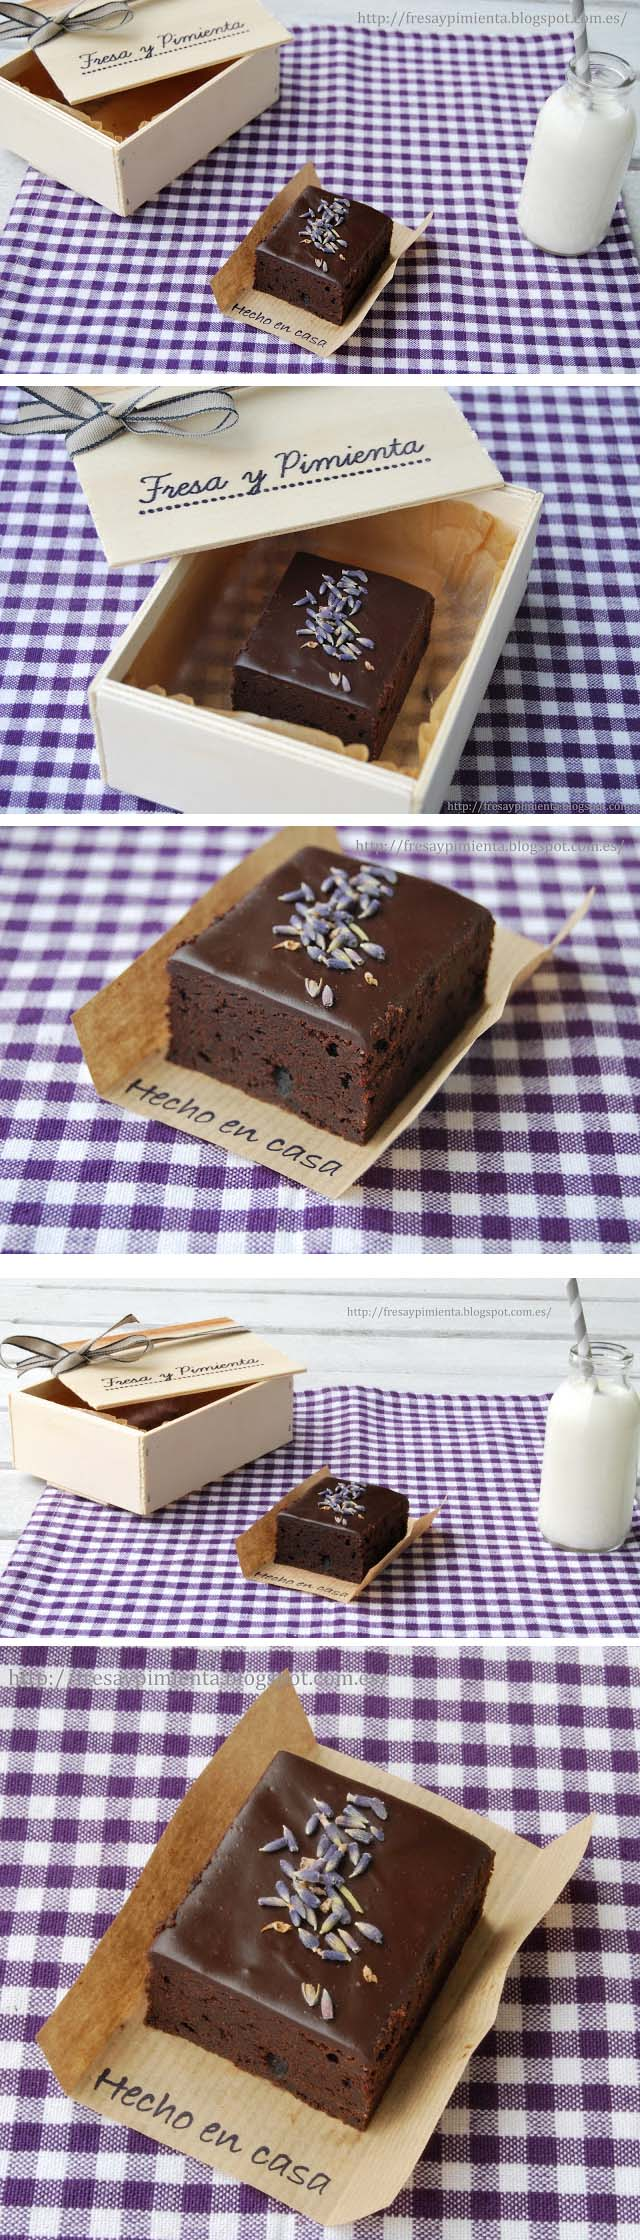 brownie-lavanda-chocolate